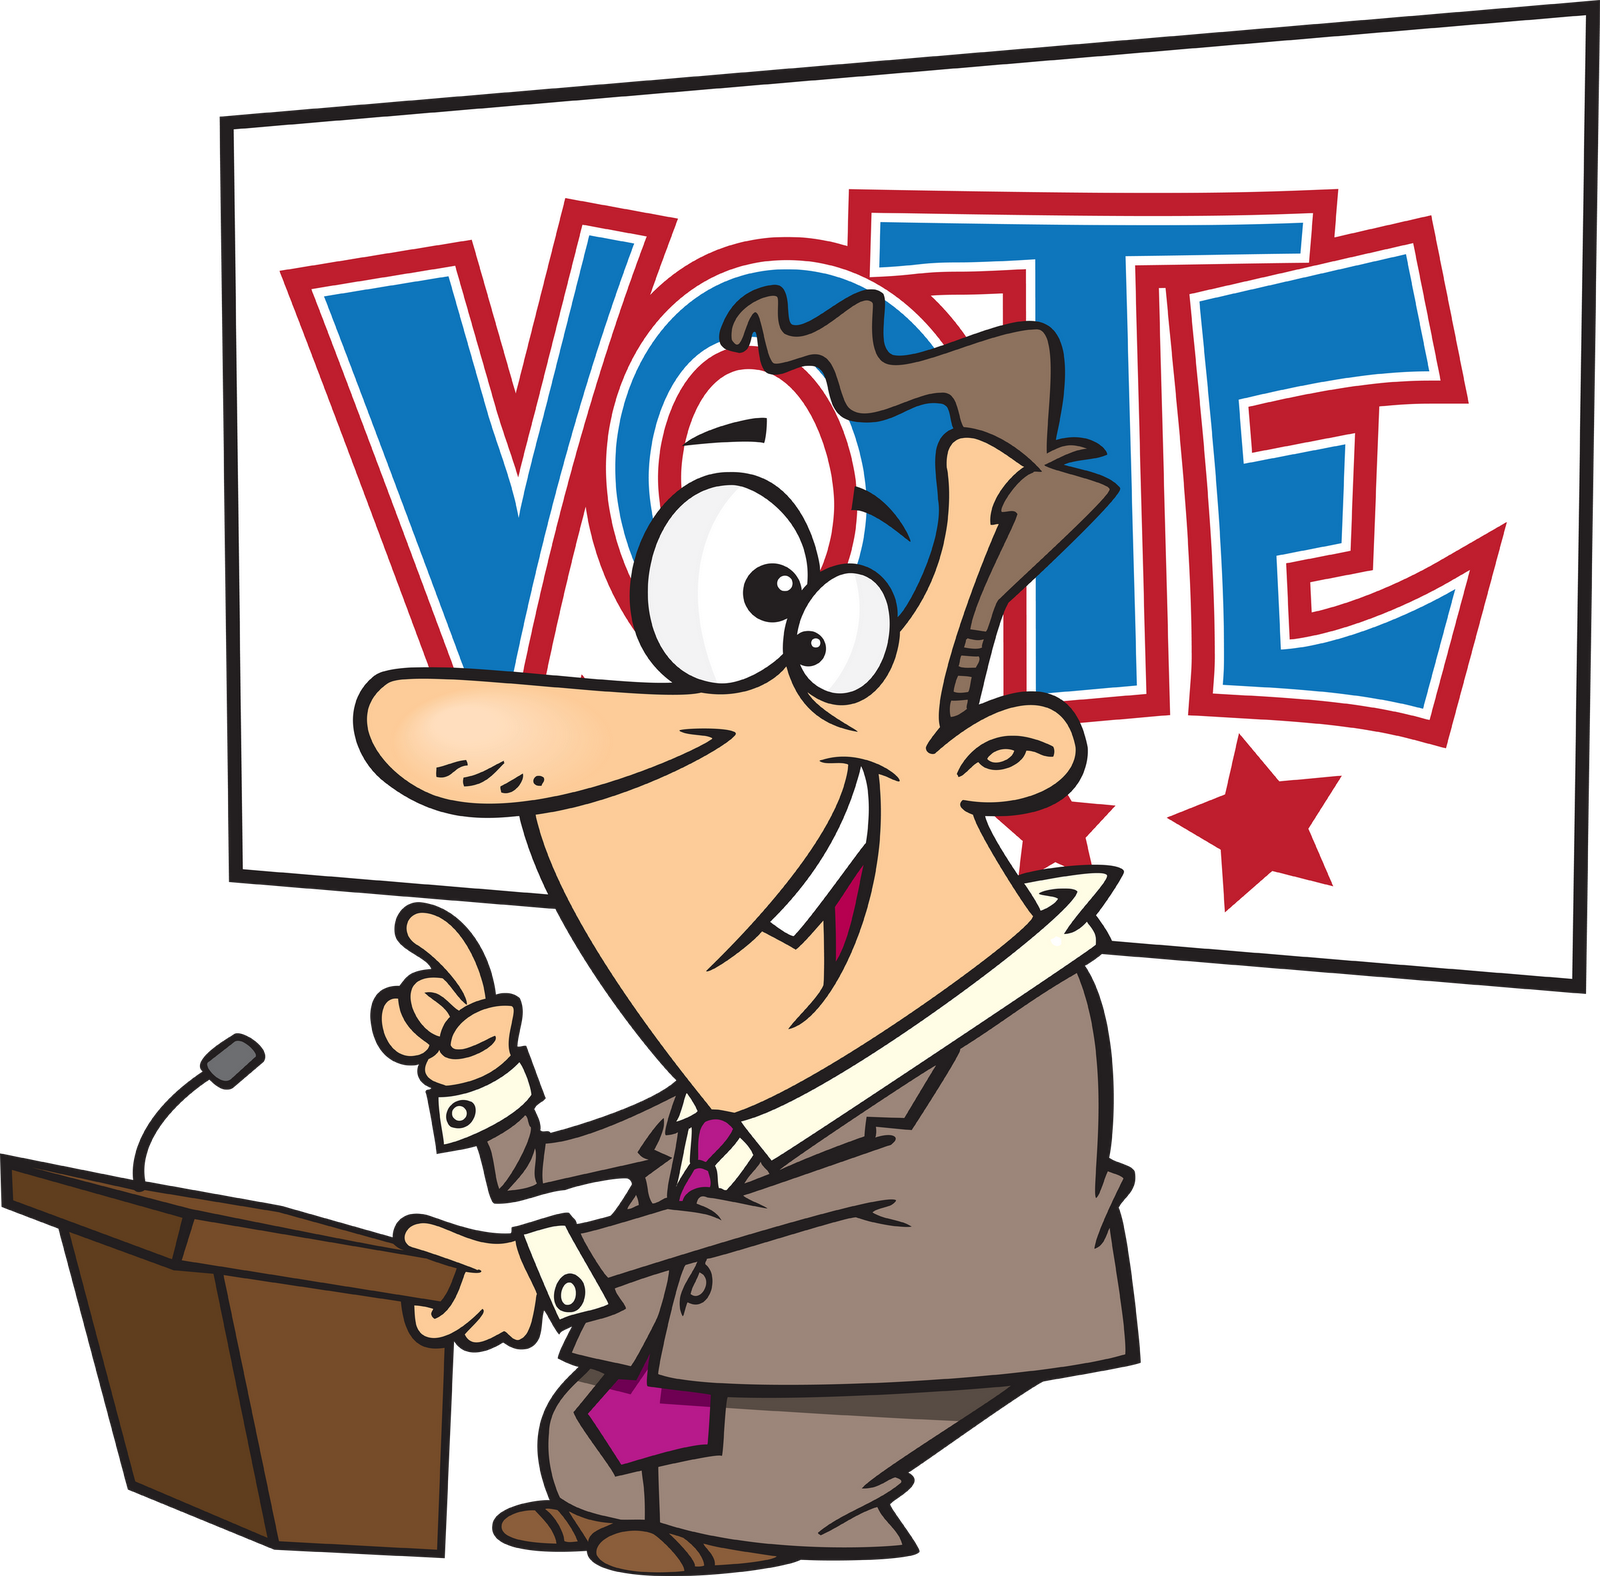 President clipart government policy. Presidents animated pencil and